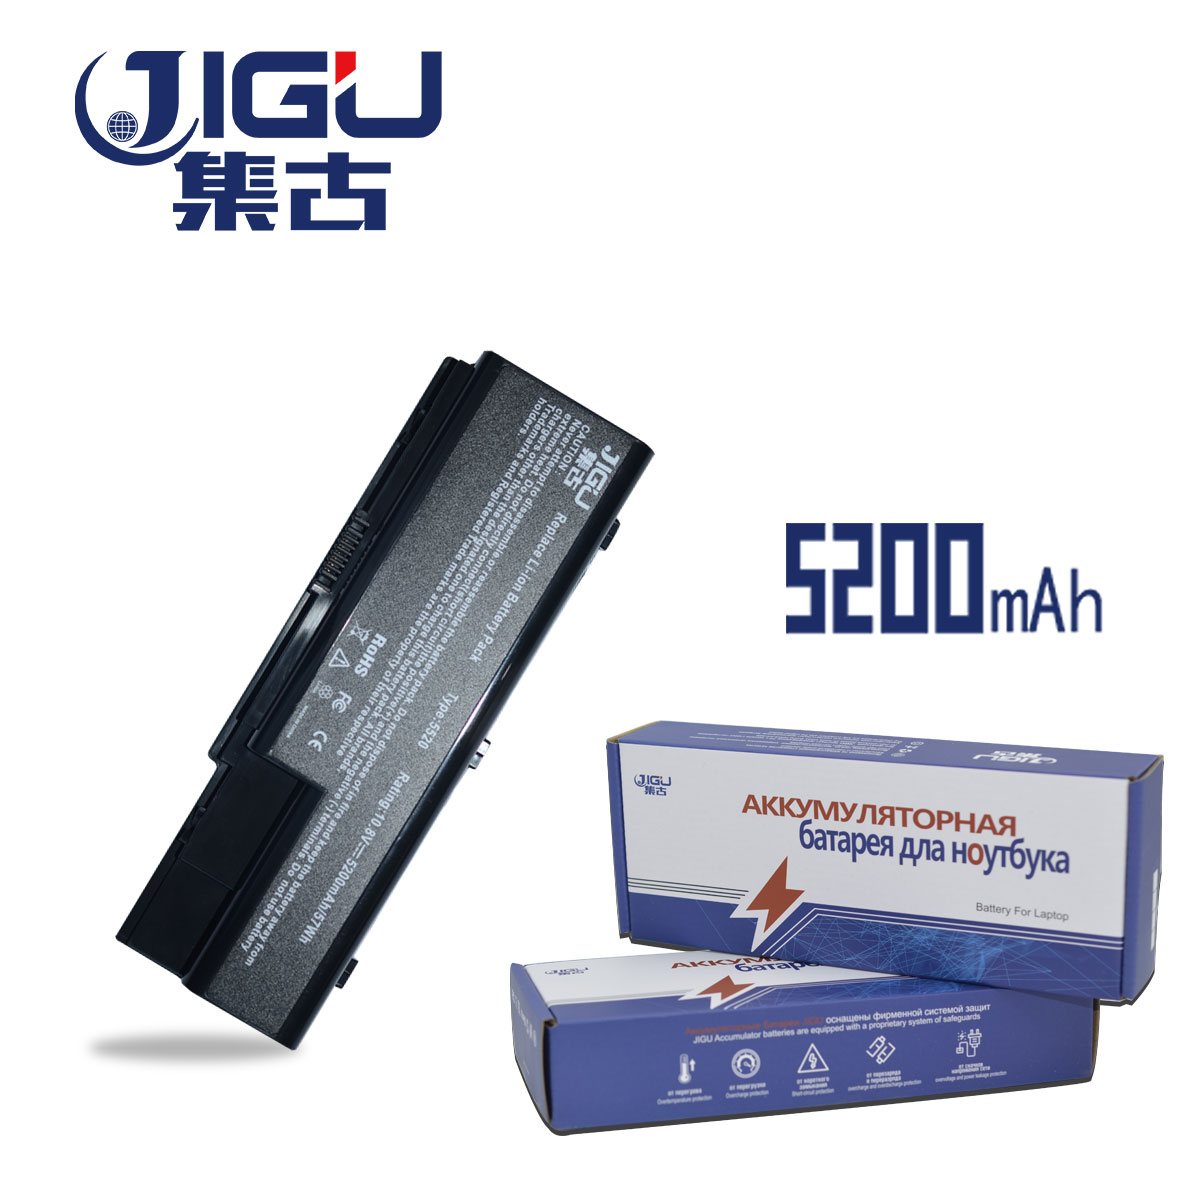 JIGU Laptop Battery For Acer Aspire 5520 5720 5920 6920 6920G 7520 7720 7720G 7720Z Series AS07B31 AS07B72 CONIS72 As07b51 for acer 7220 7520 5315 5720 7720 5520 5310 laptop cpu fan